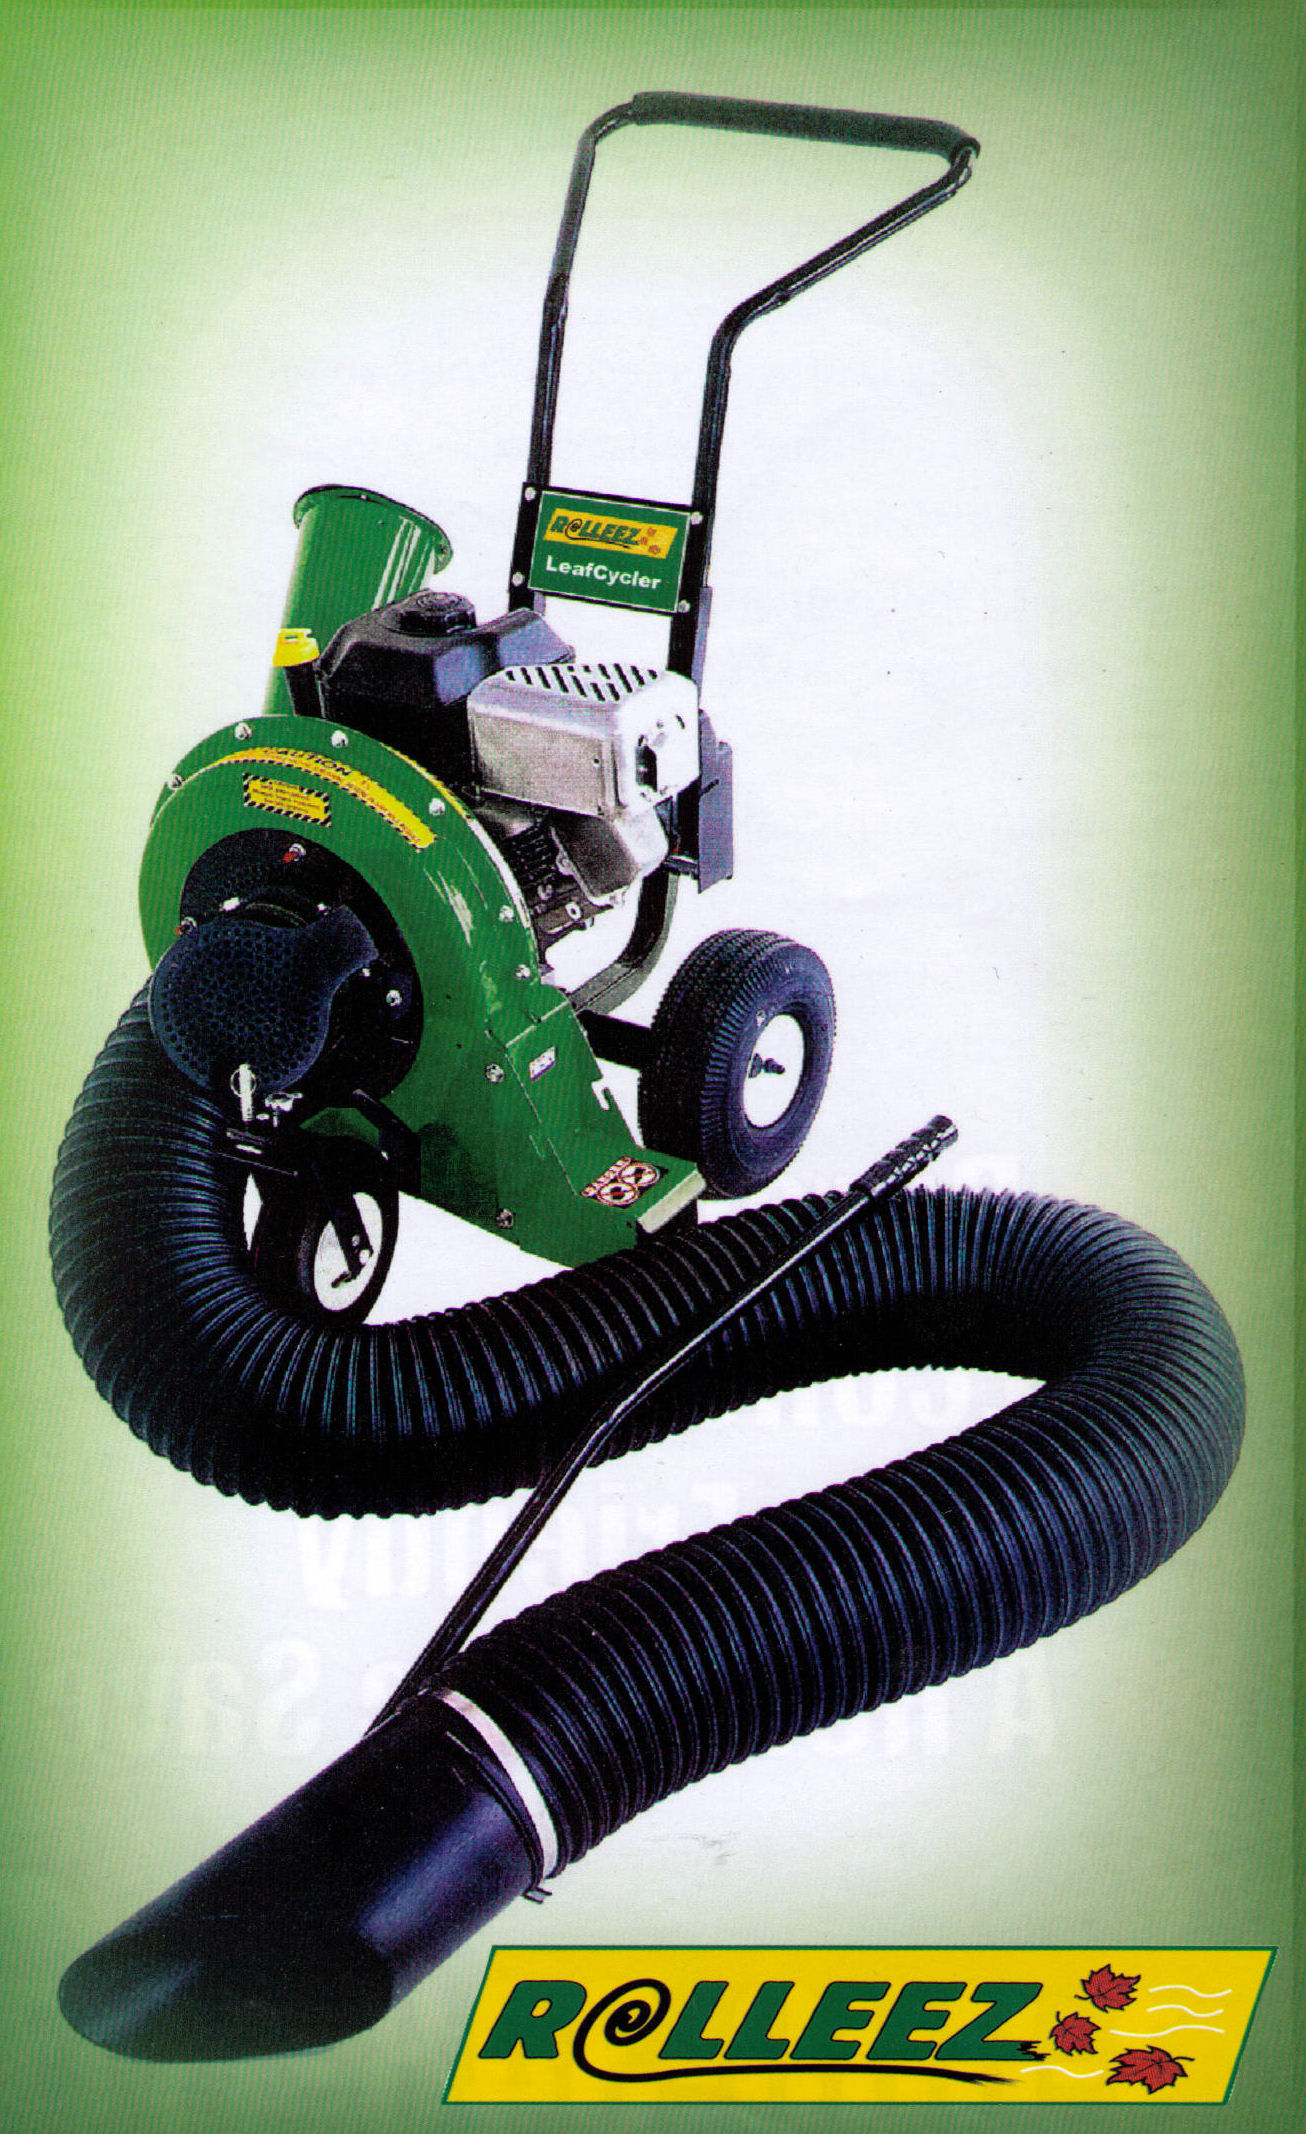 LeafCycler Combination Leaf Vacuum, Leaf Blower, And Chipper/Shredder